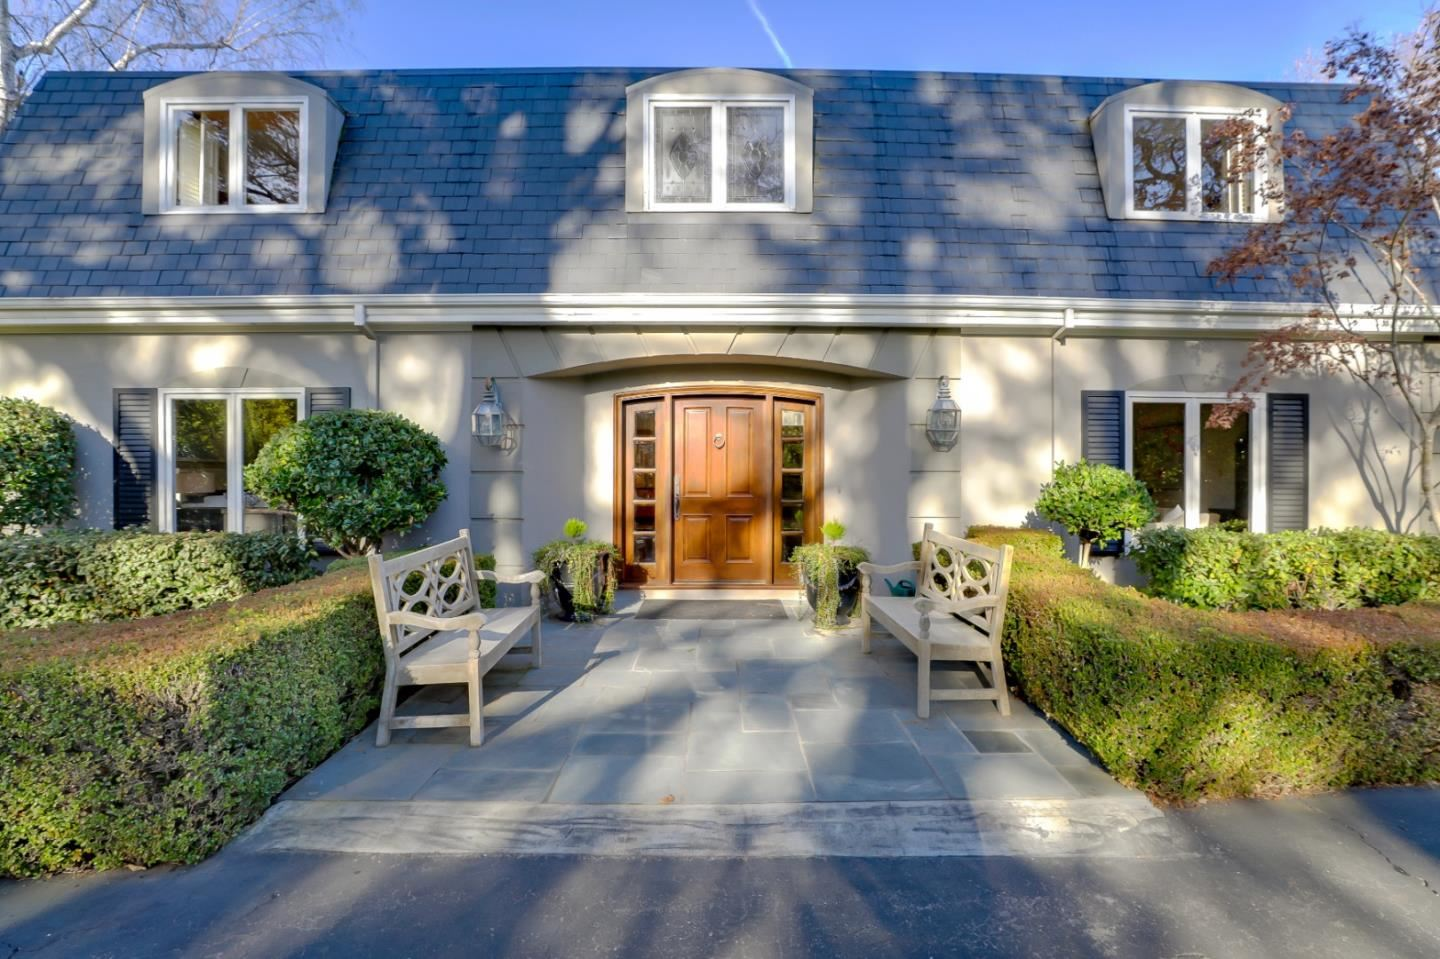 Photo for 345 Selby LN, ATHERTON, CA 94027 (MLS # ML81827724)